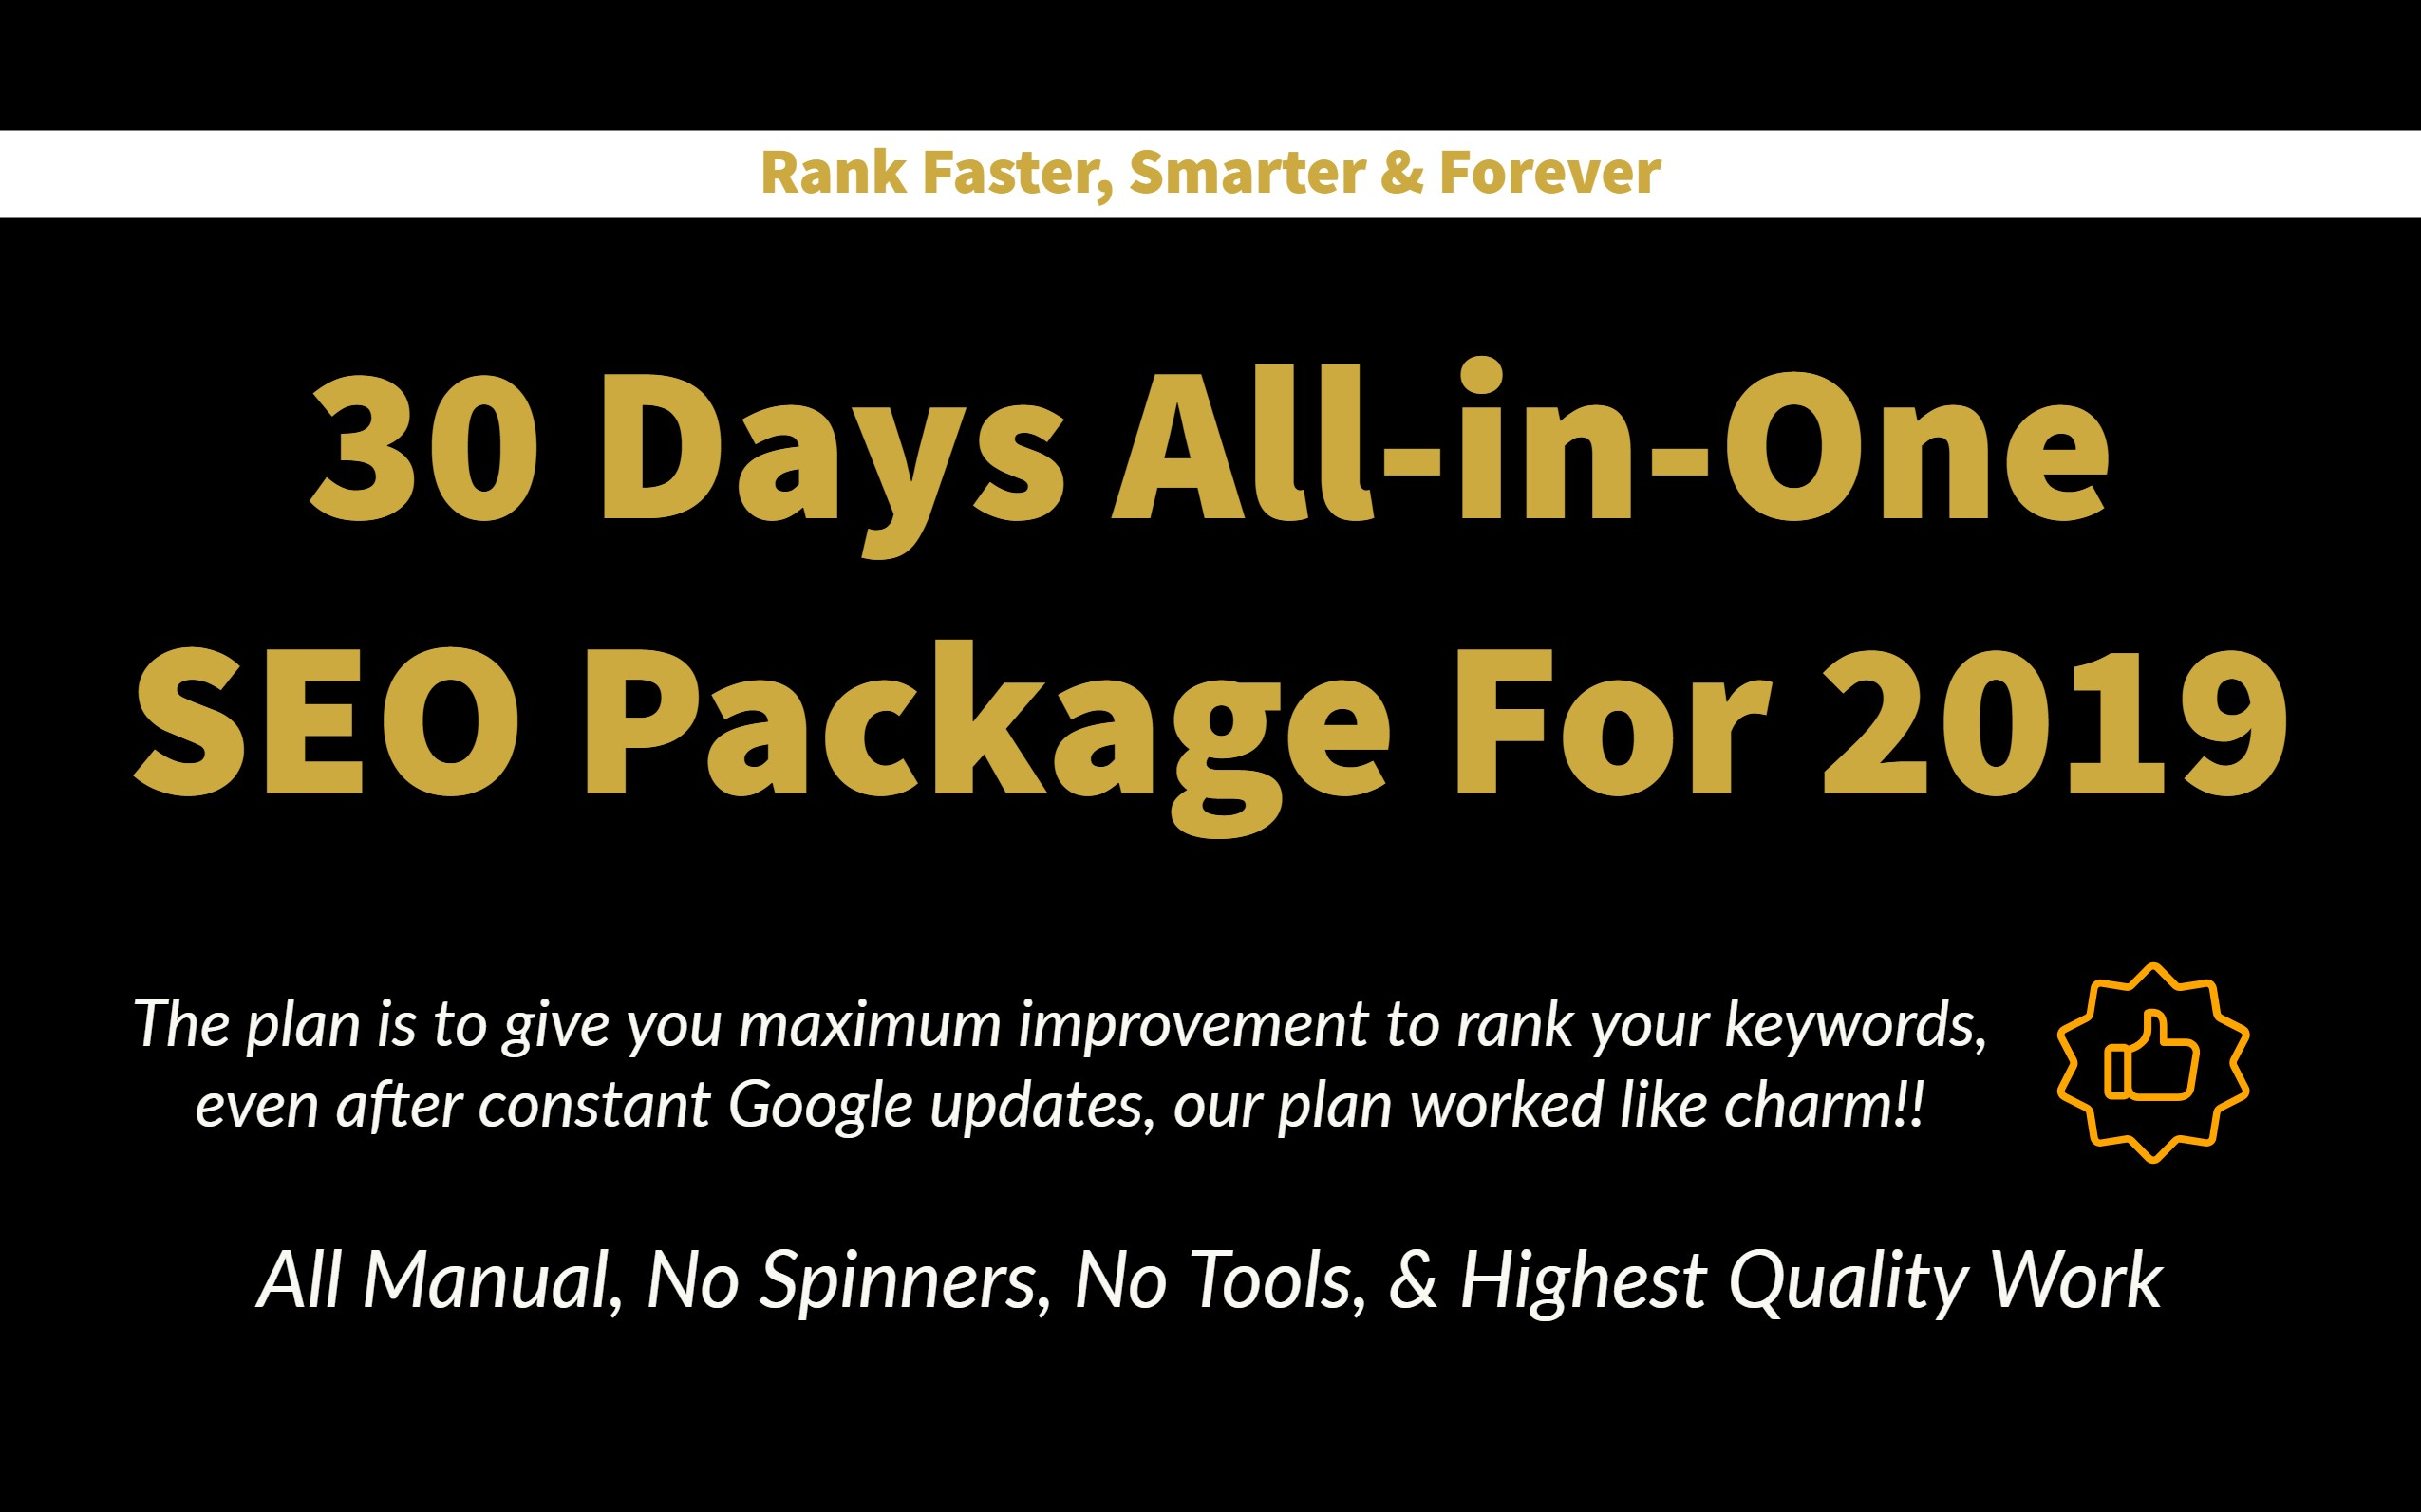 30 Days All-In-One SEO Package For 2019 - Rank Faster With New SEO Plan